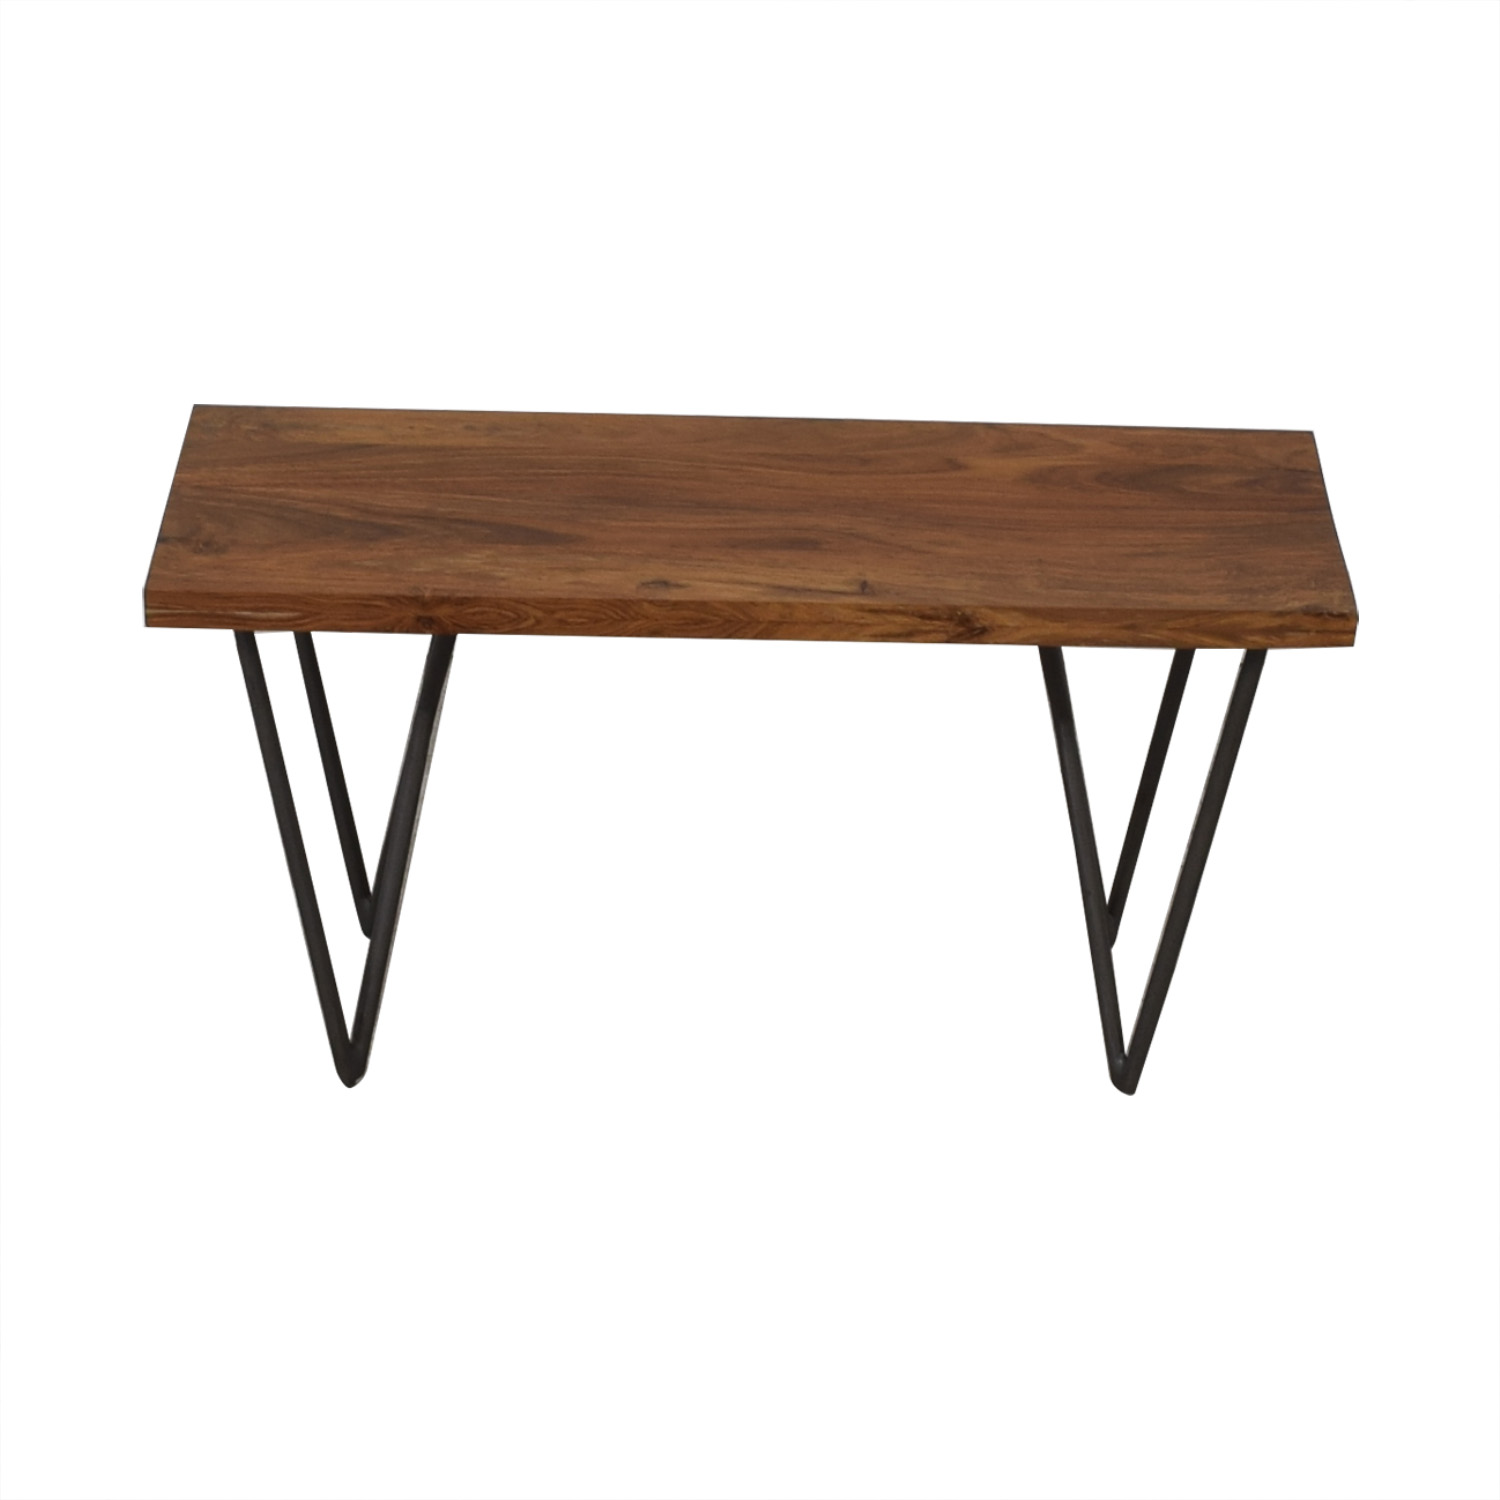 CB2 CB2  Wood and Green Bench for sale